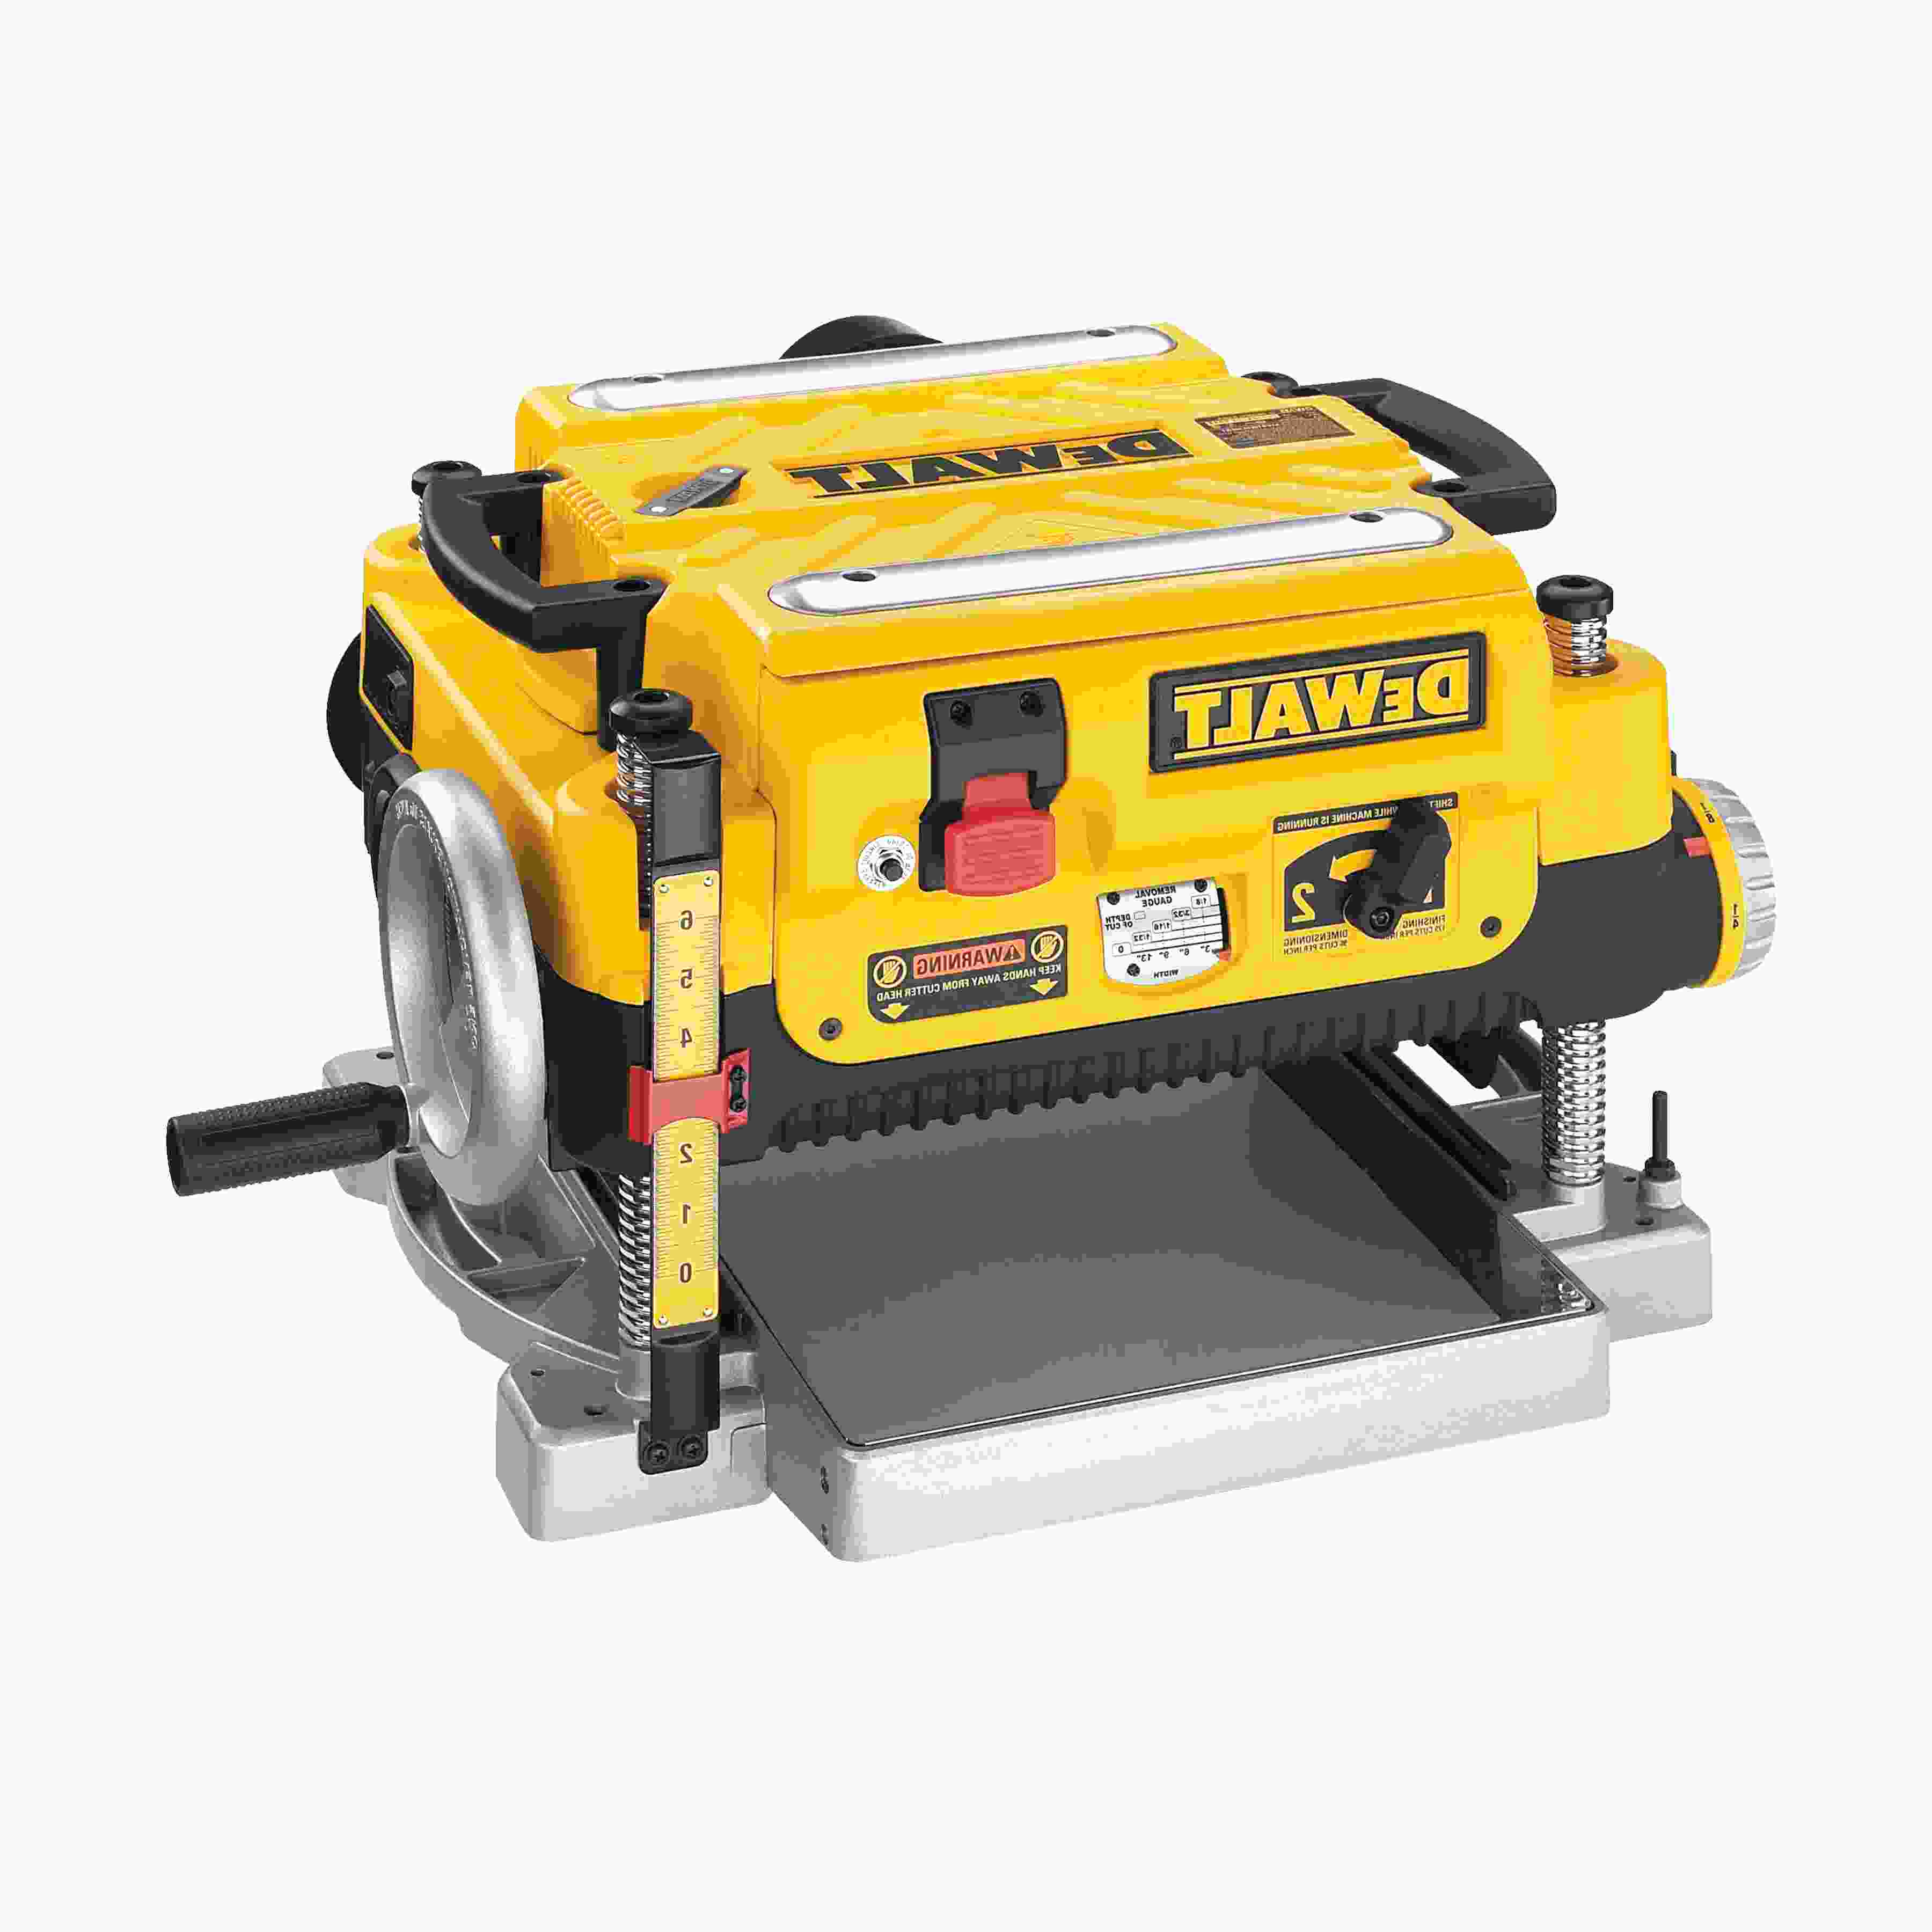 dewalt 735 planer for sale